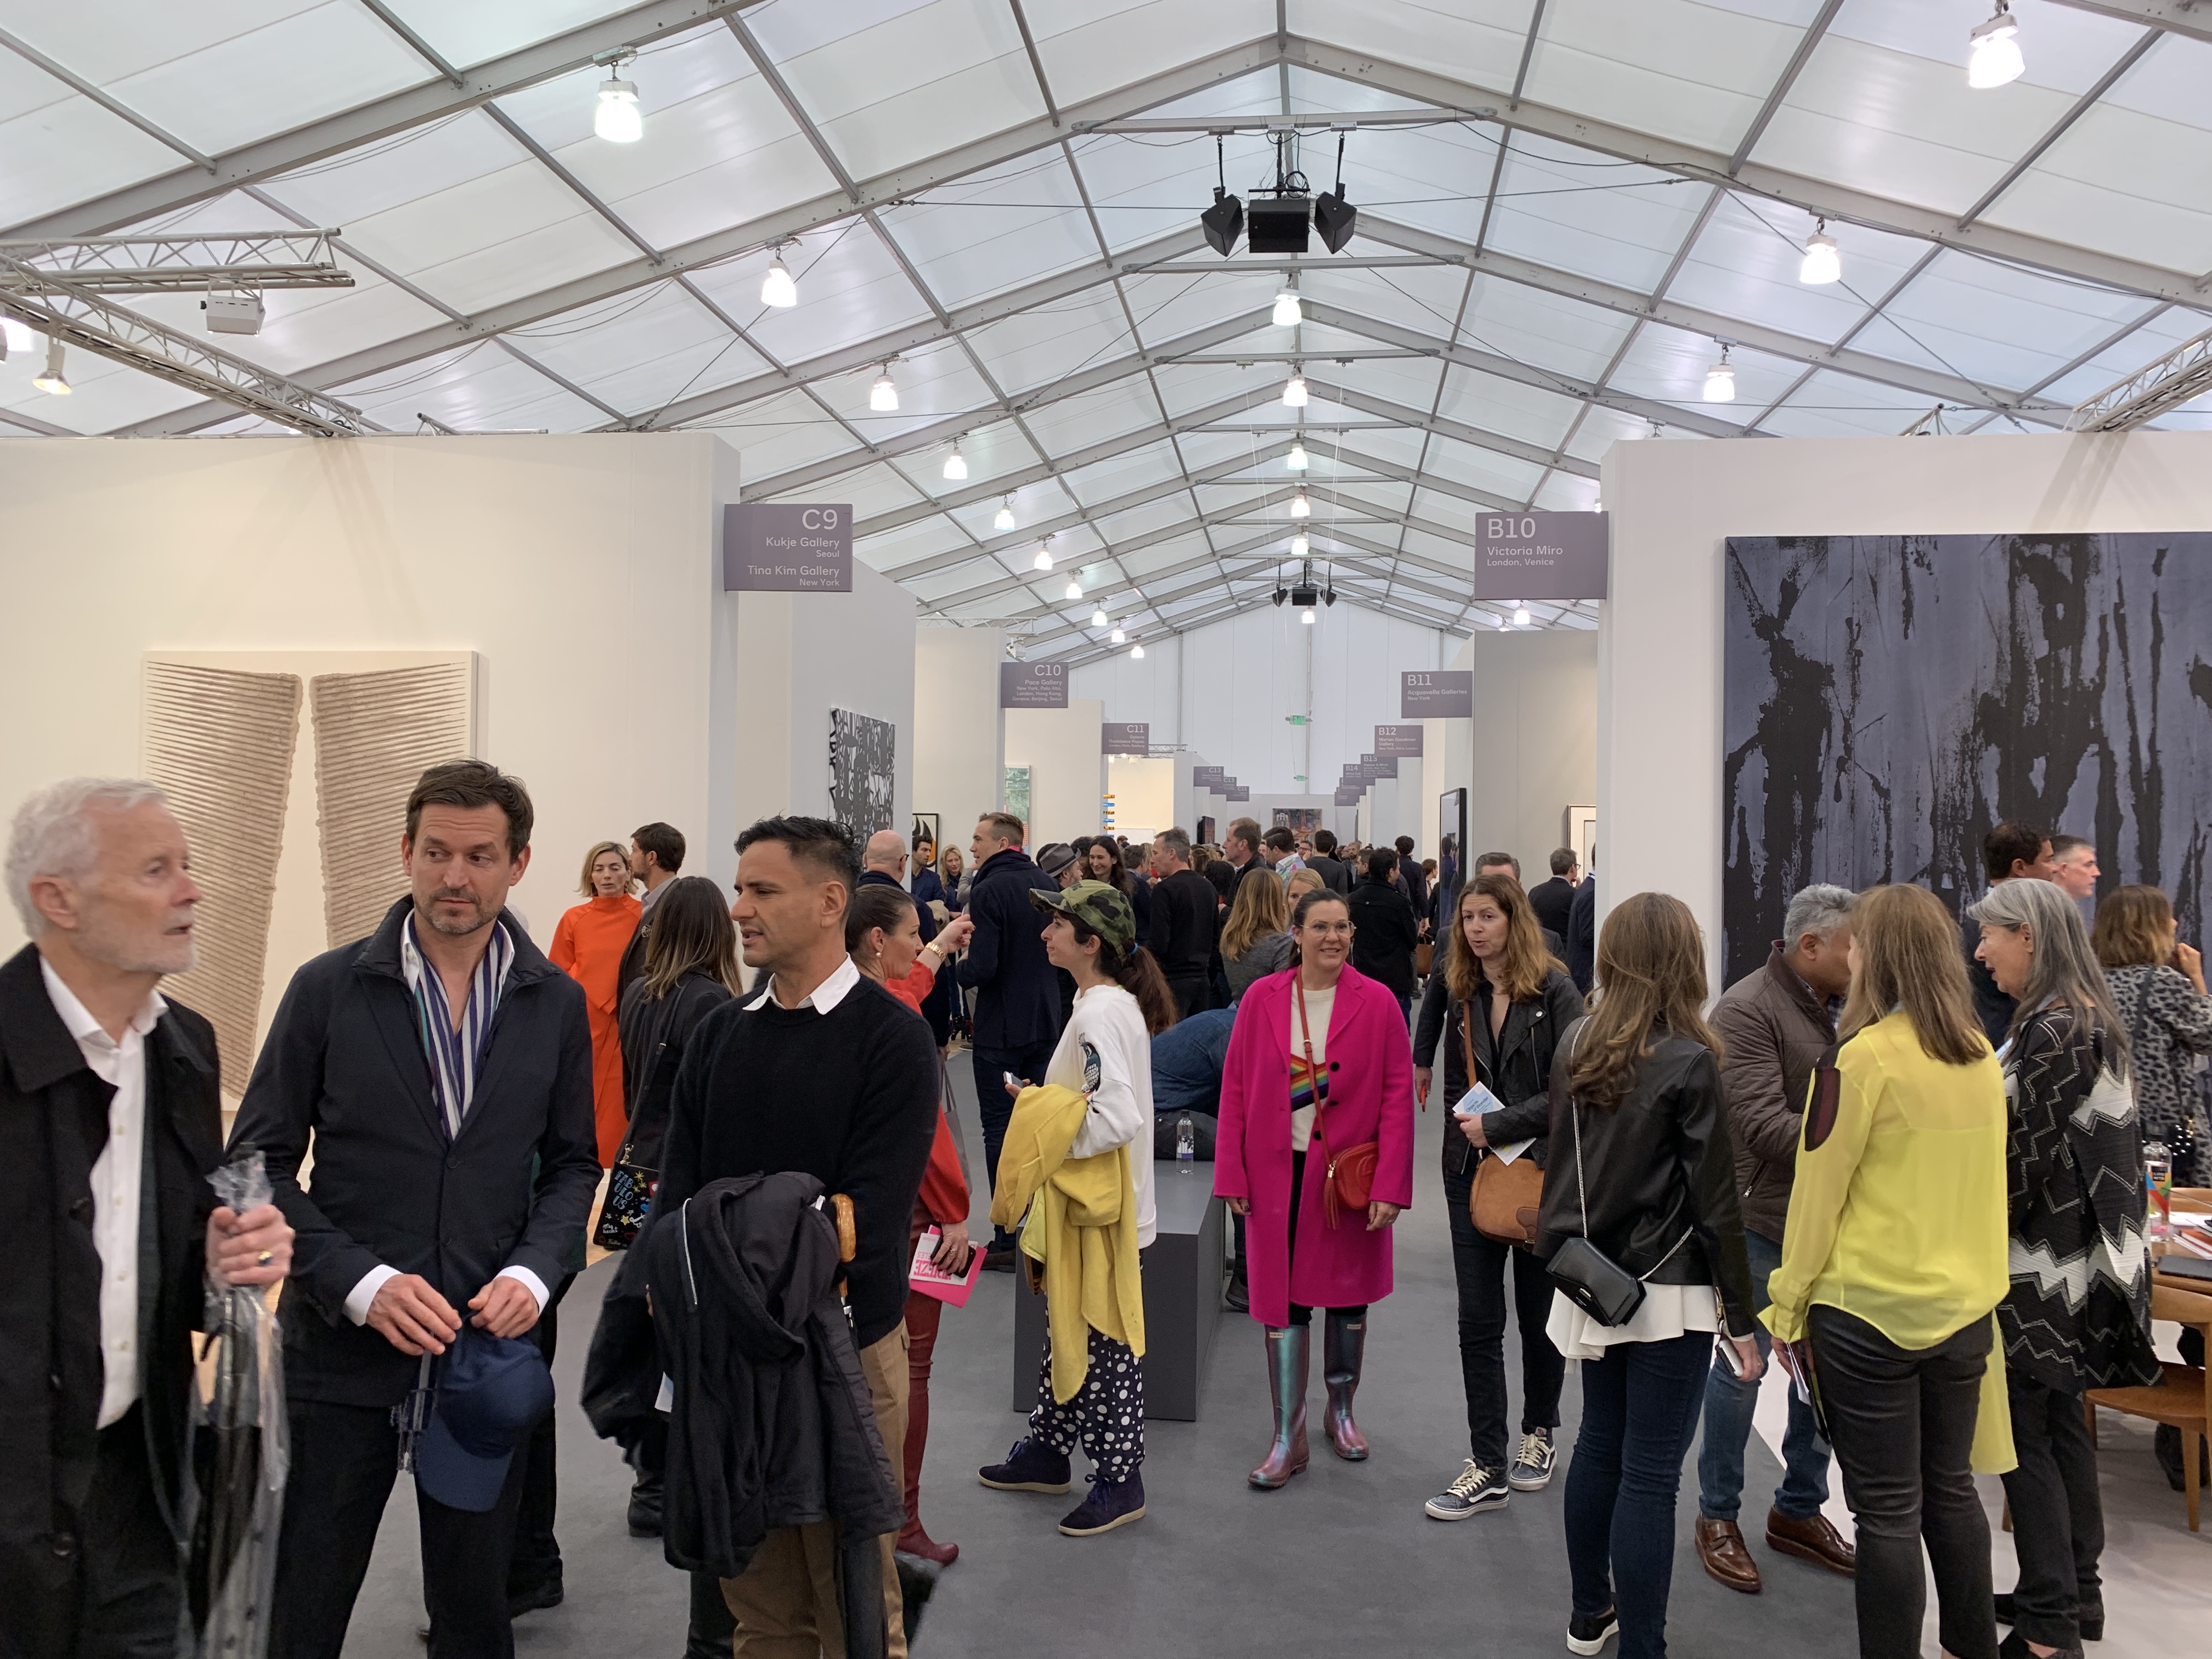 A Brief Look at the High—and Wildly Disparate—Prices Art Fairs Charge for Admission